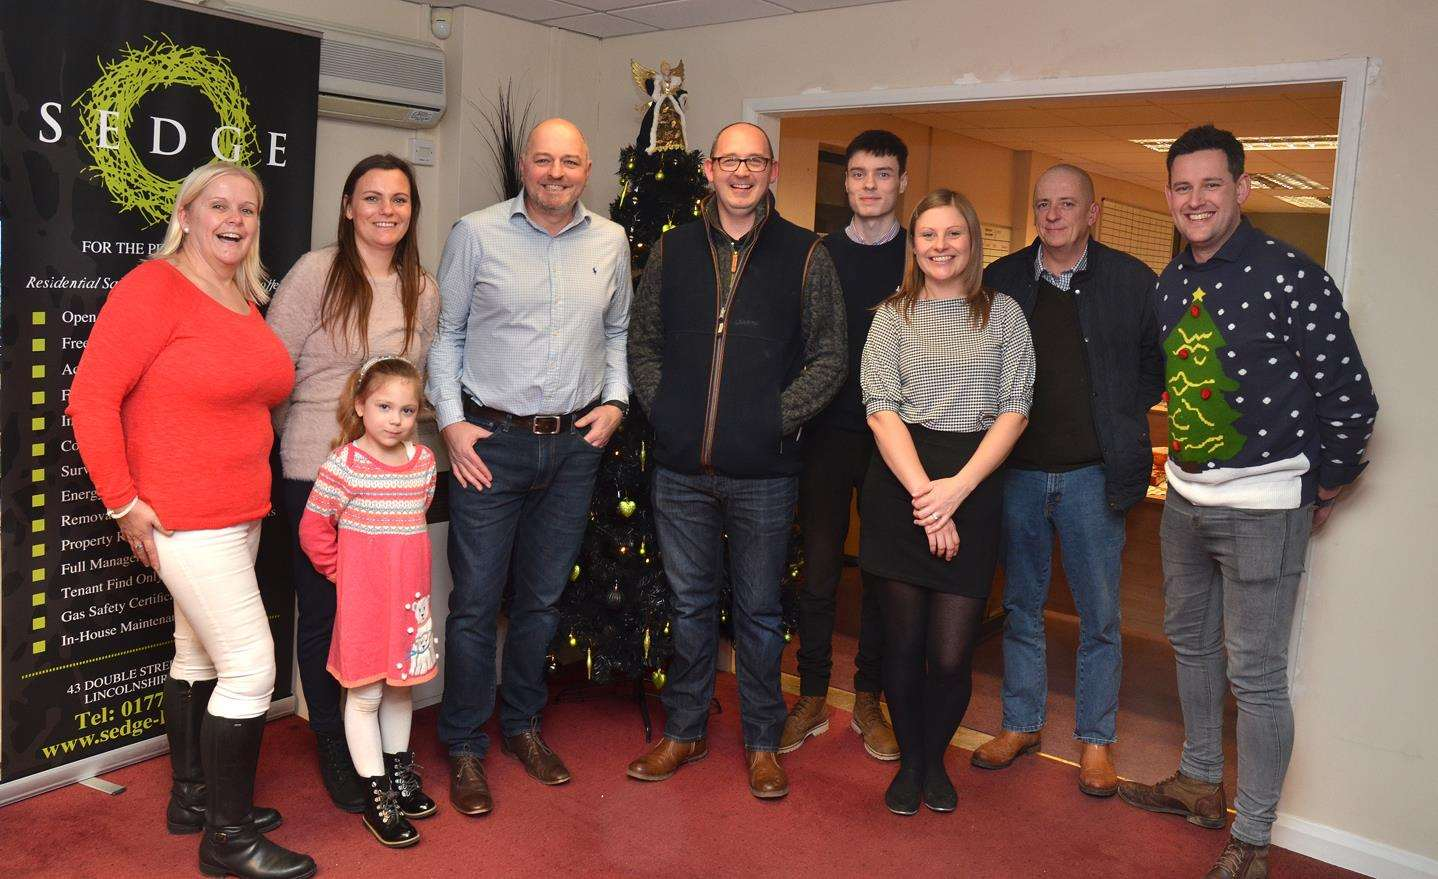 Christmas drinks and buffet at Sedge Homes with Debbie White, Dorota and Lena Debska, Pete Coupland, vendor Rob Fielding, Rhys Brasier, Amy Coxon, Lanice Bush of A Plumber On Tap Ltd and sales director Scott Walker.